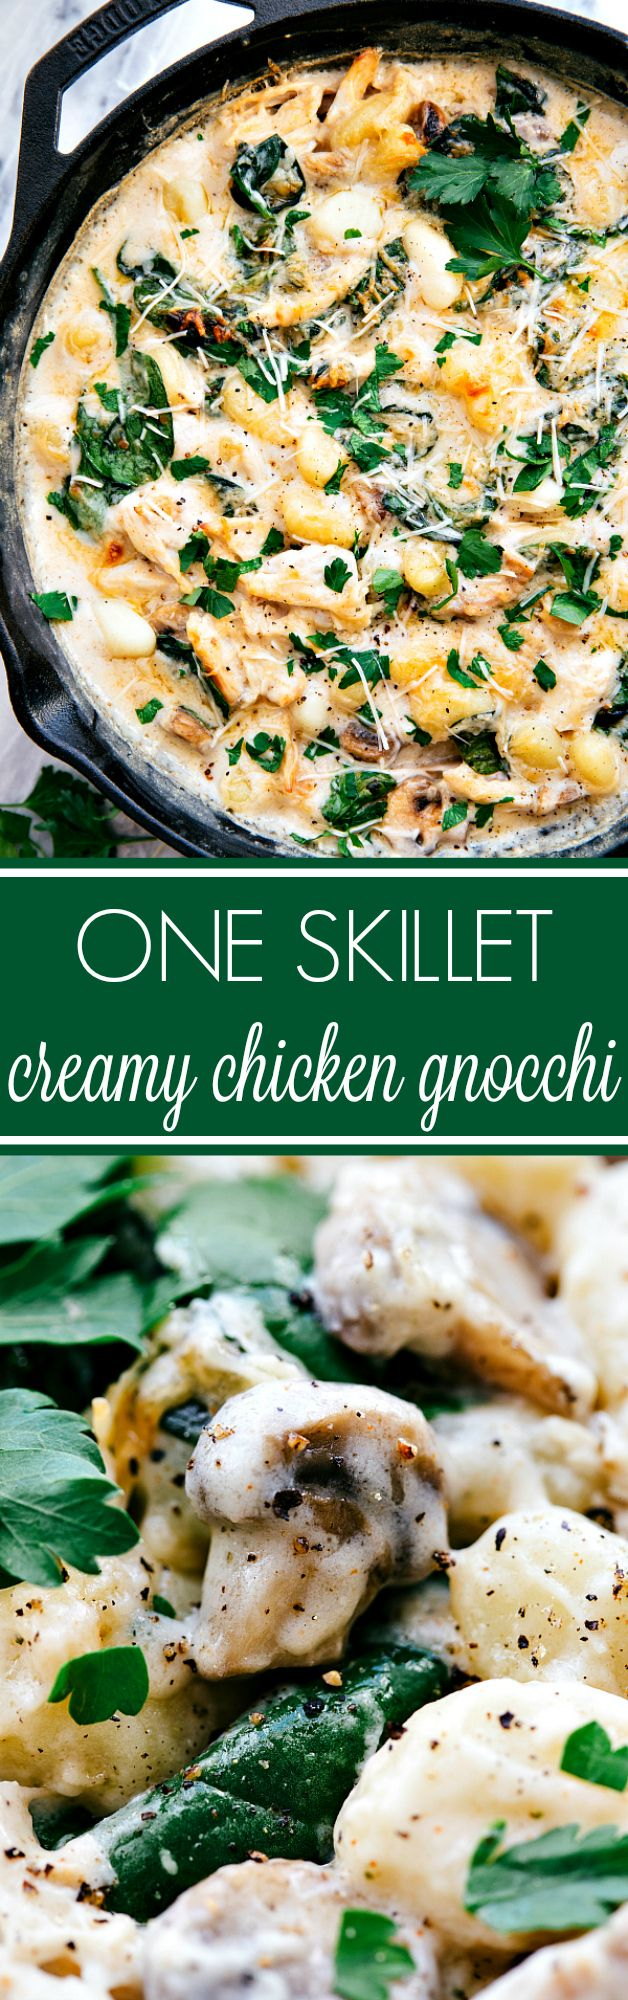 Easy 20 minute prep ONE SKILLET creamy chicken gnocchi